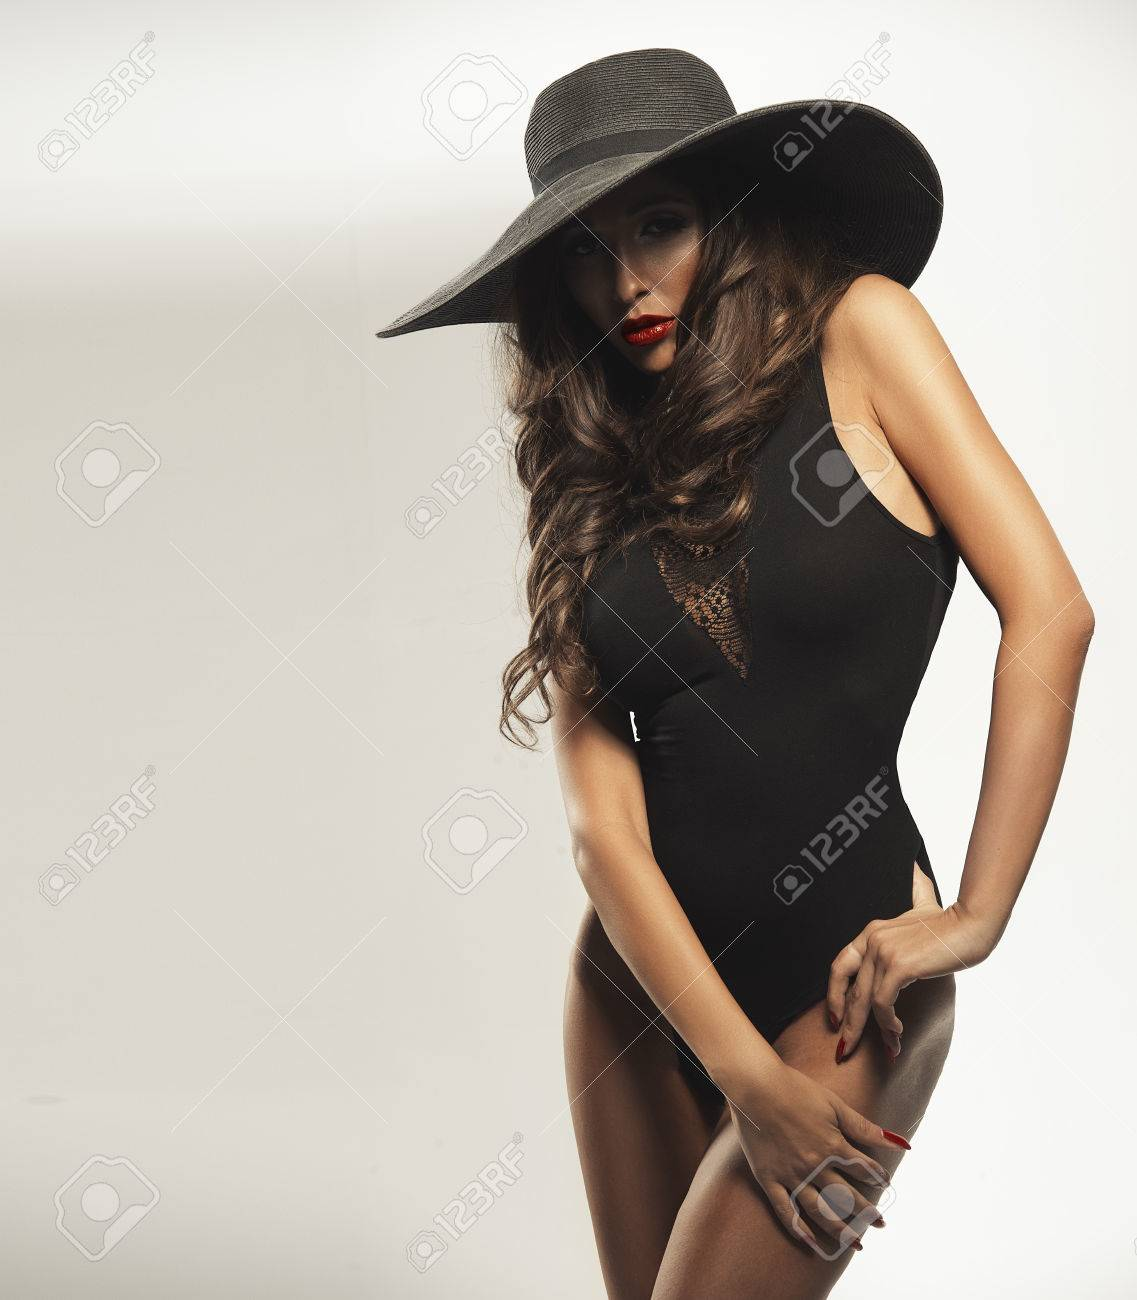 460b84febea Beautiful young woman with red lips wearing summer black hat with large  brim Stock Photo -